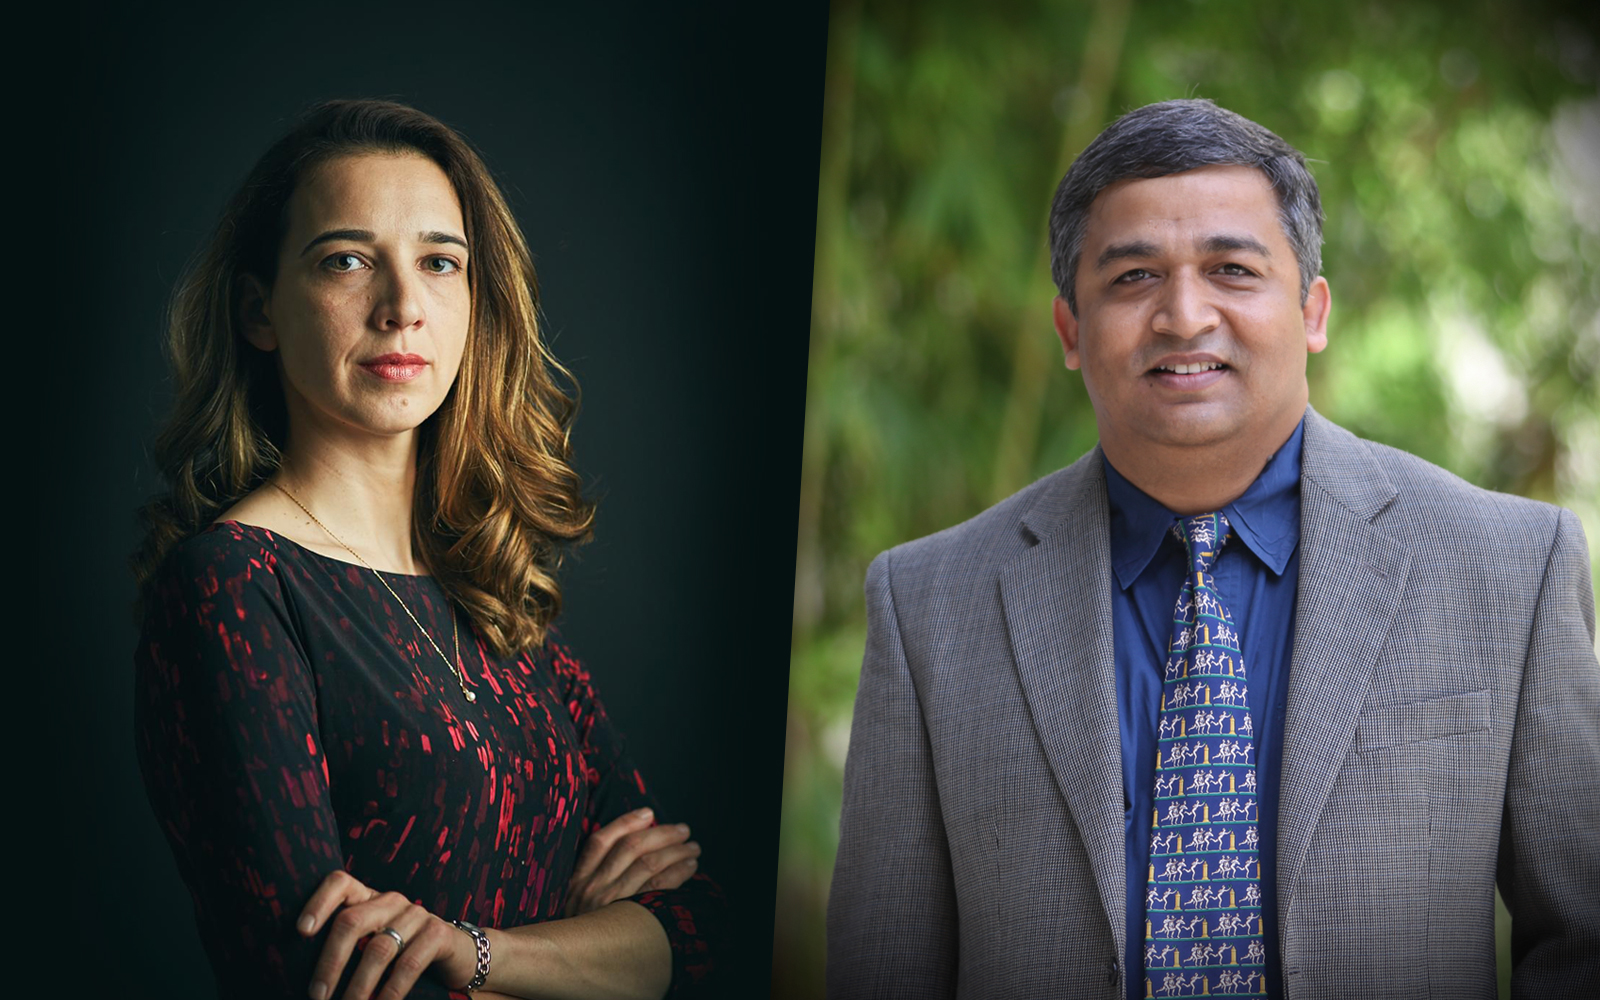 Alina Lerman and Debanjan Mitra will join the UConn School of Business faculty this fall. (Alina Lerman, Debanjan Mitra)